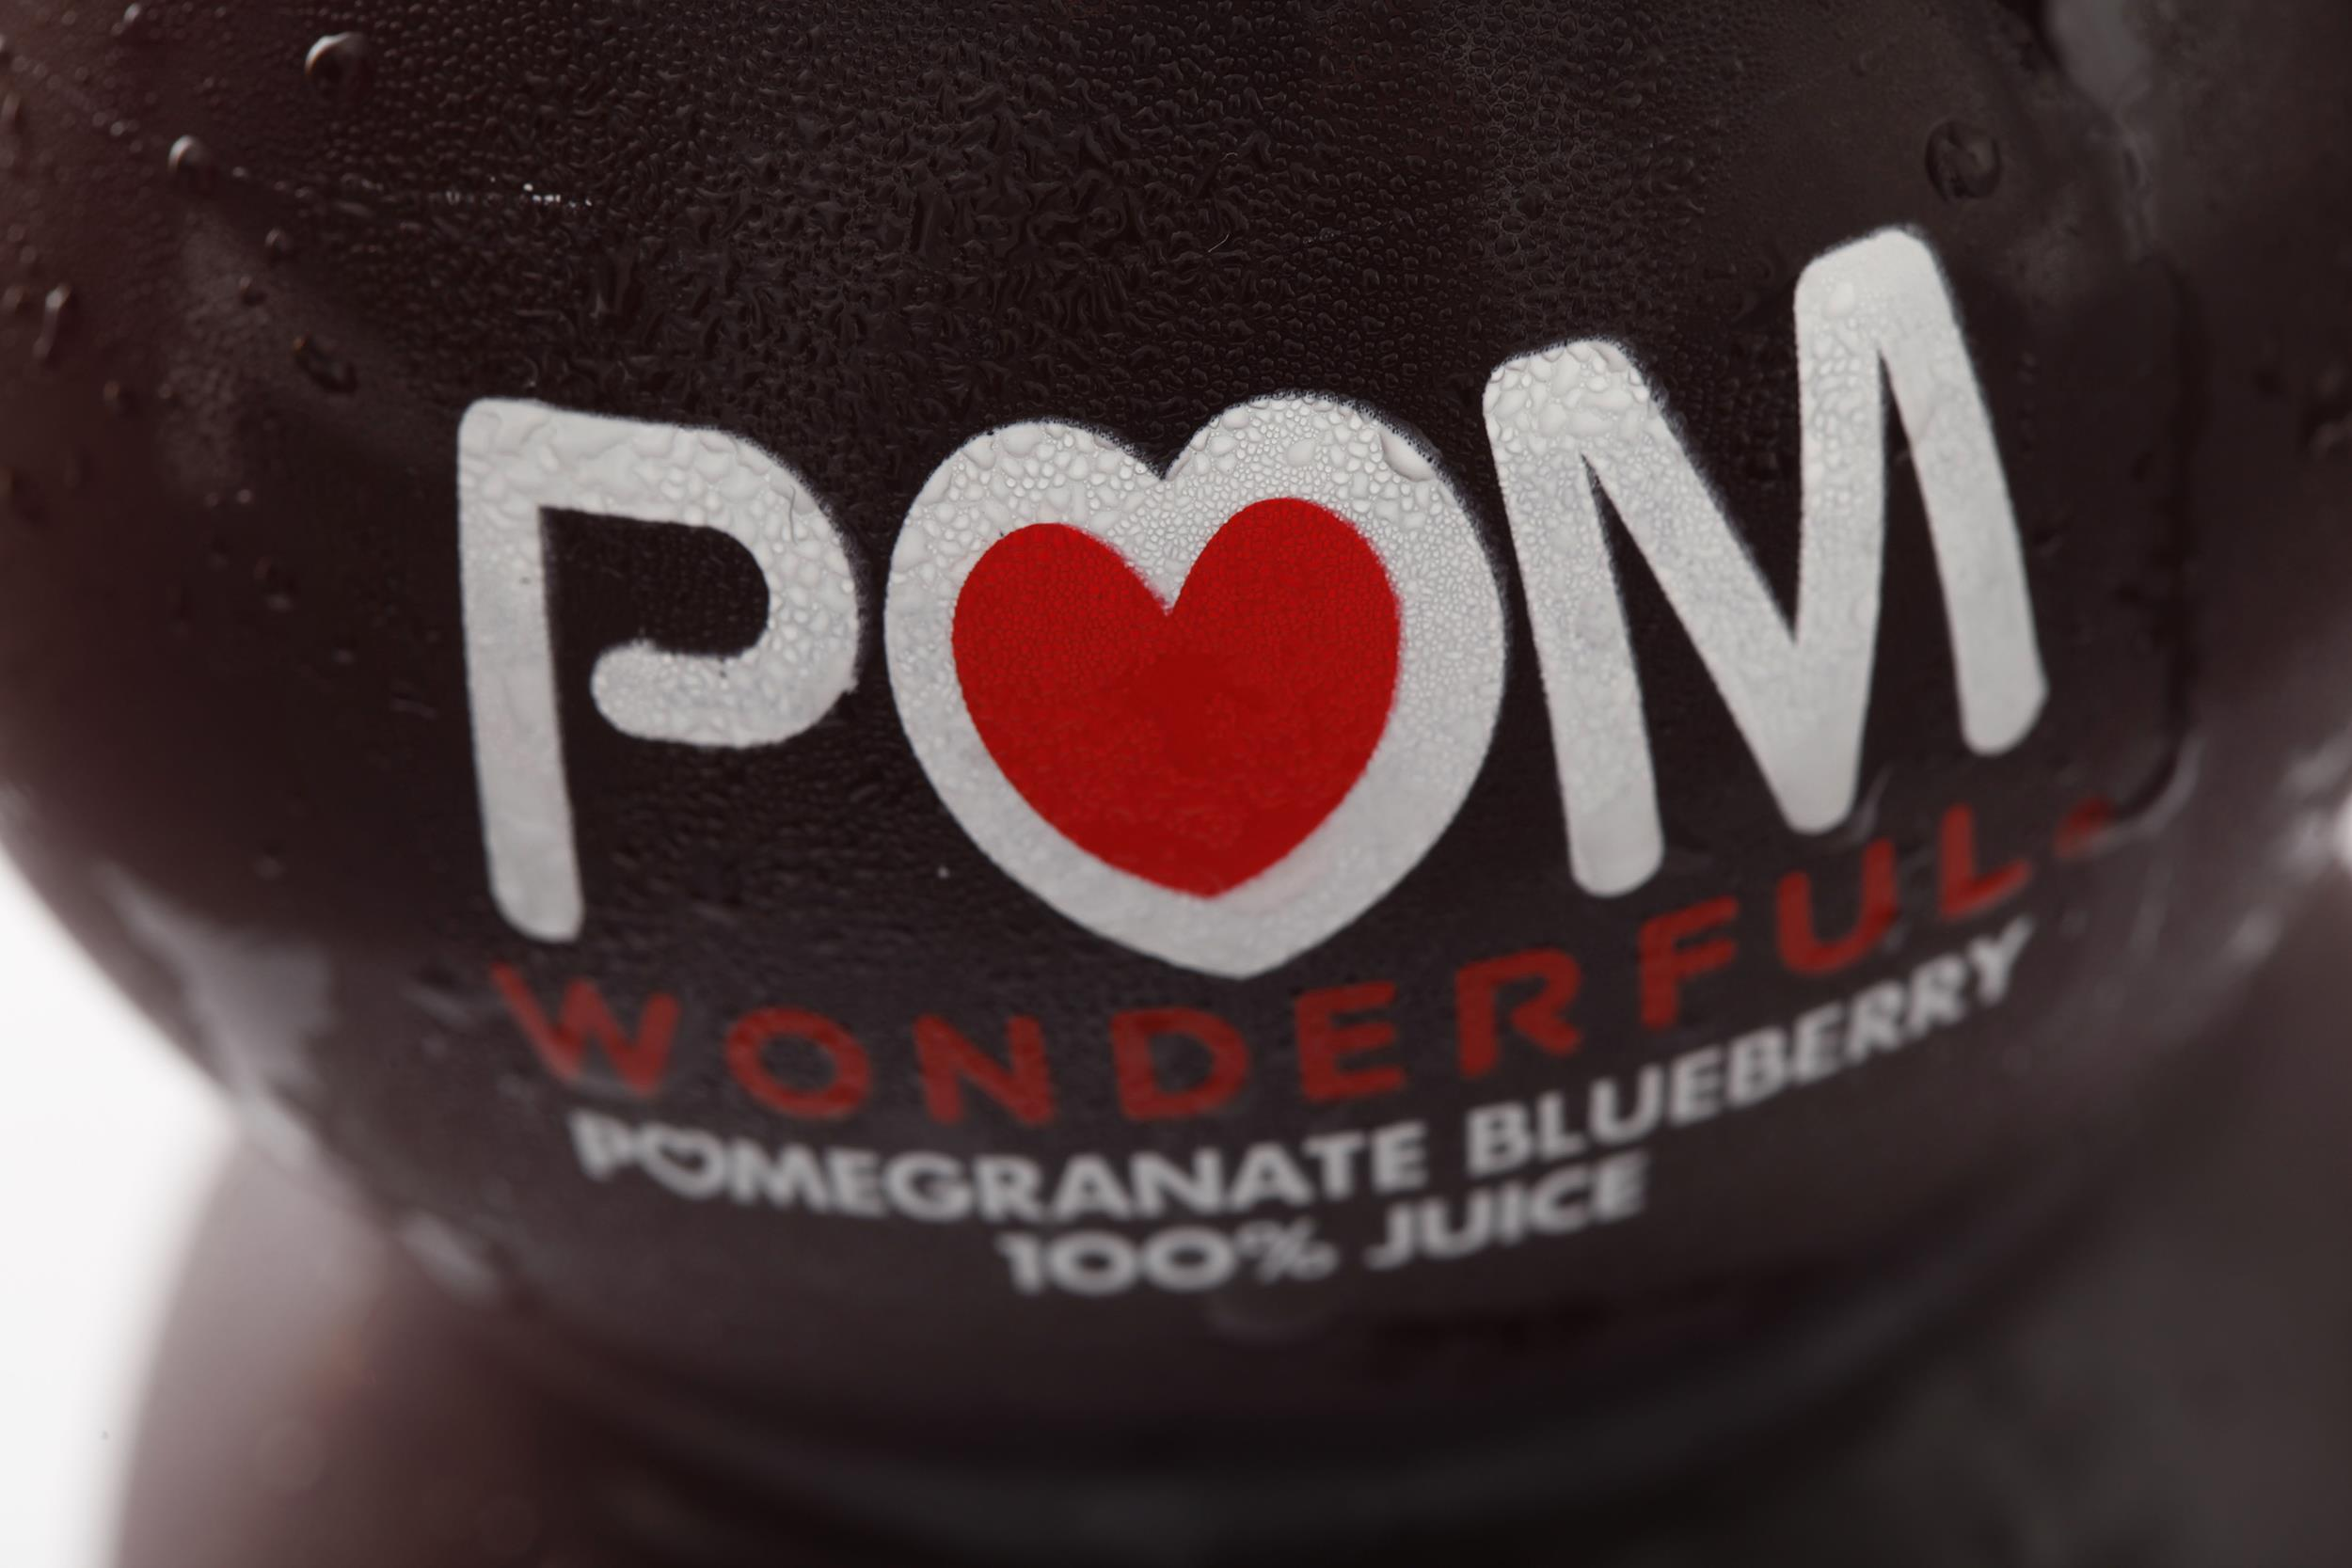 Image: A bottle of POM Wonderful juice in Philadelphia, on Sept. 27, 2010.